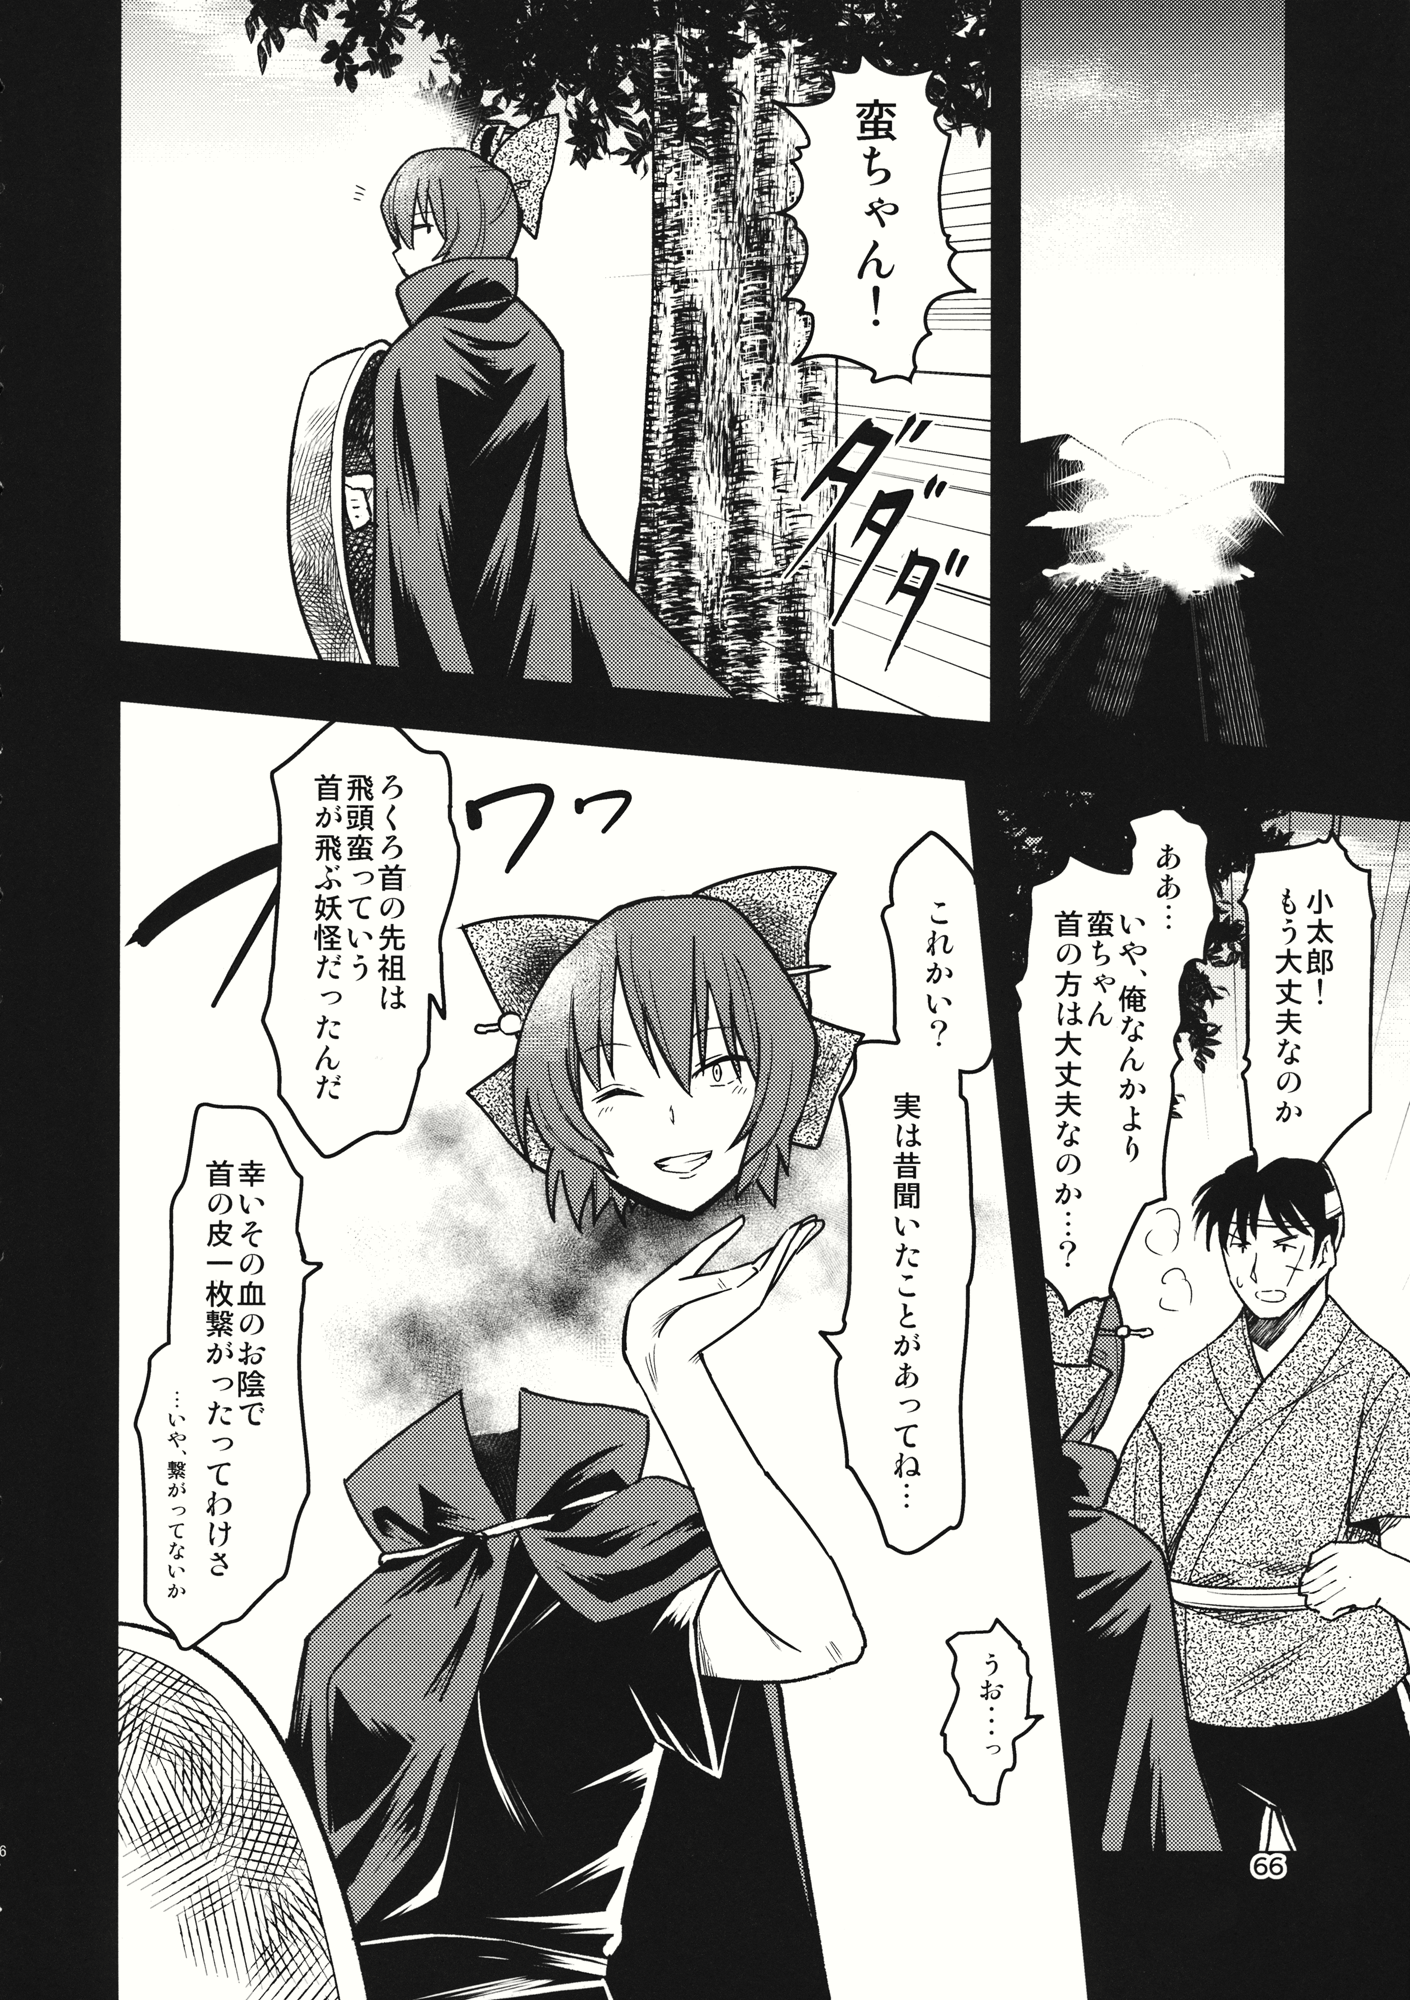 1boy 1girl ajirogasa bandage bow cape comic floating_head greyscale hair_bow hair_ornament hairpin hat highres japanese_clothes kimono monochrome page_number sekibanki shirt short_hair short_sleeves touhou translation_request urin